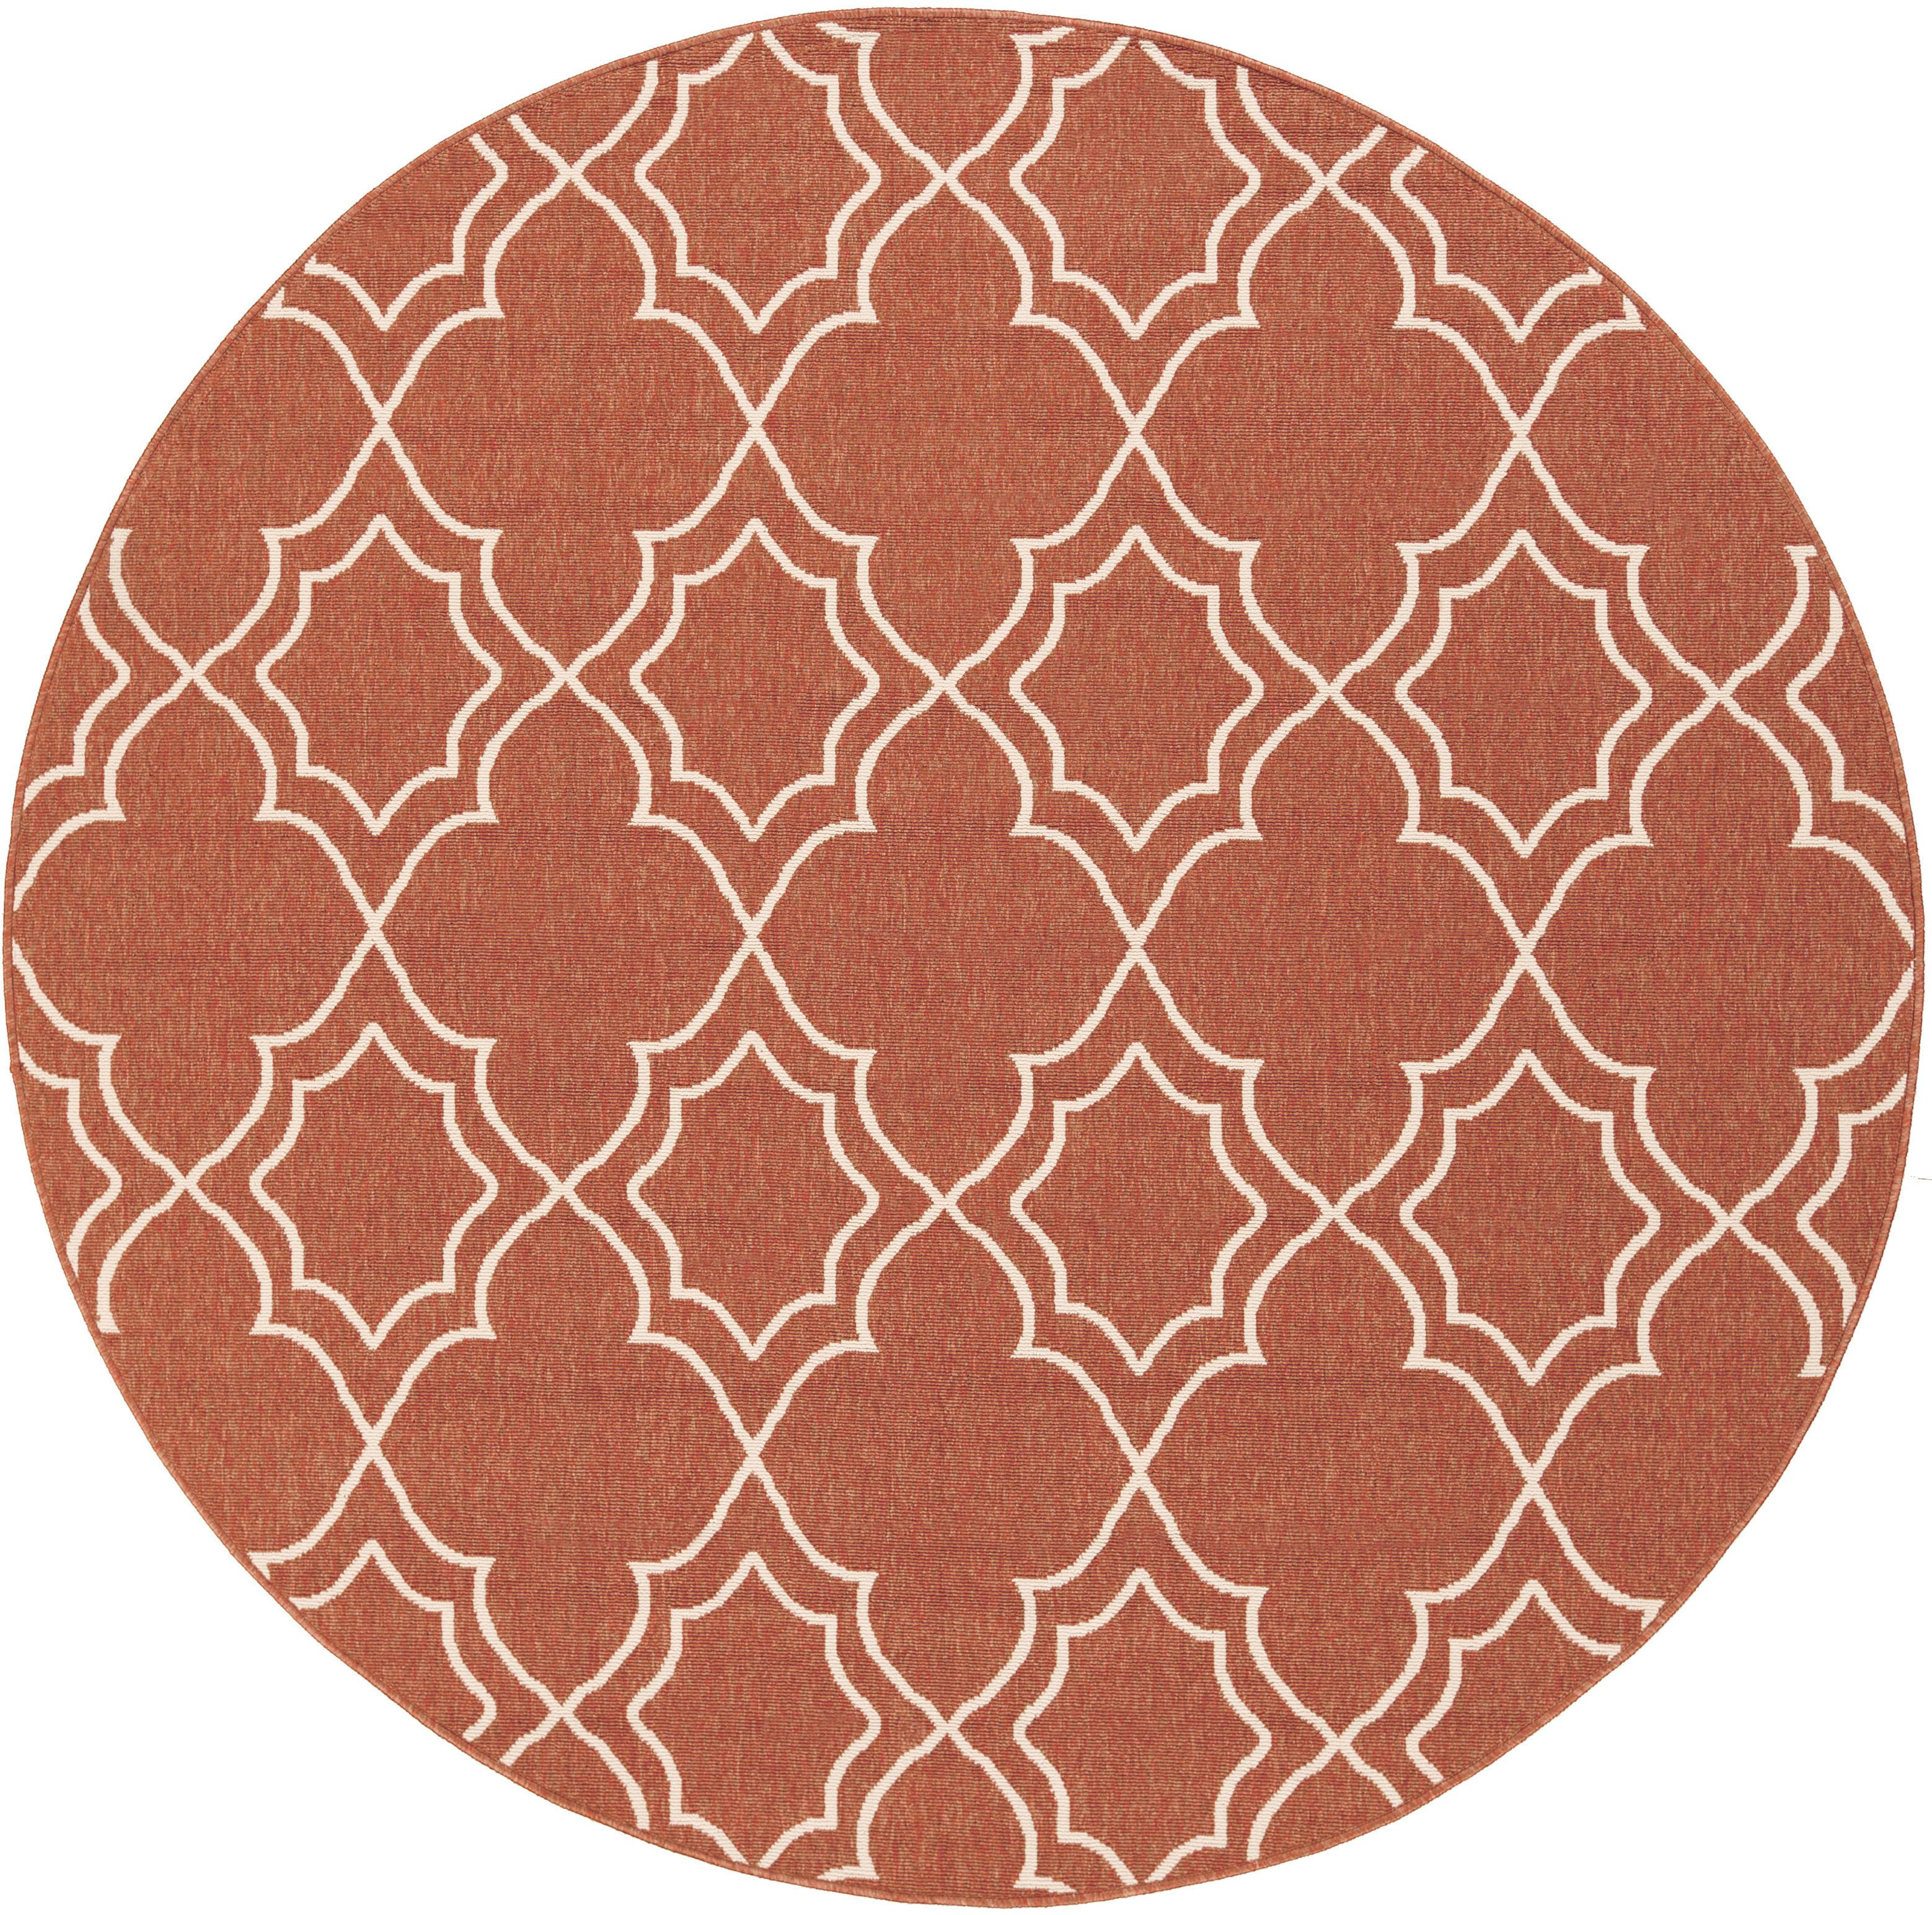 "Alfresco 8'9"" Round by Surya at Fashion Furniture"